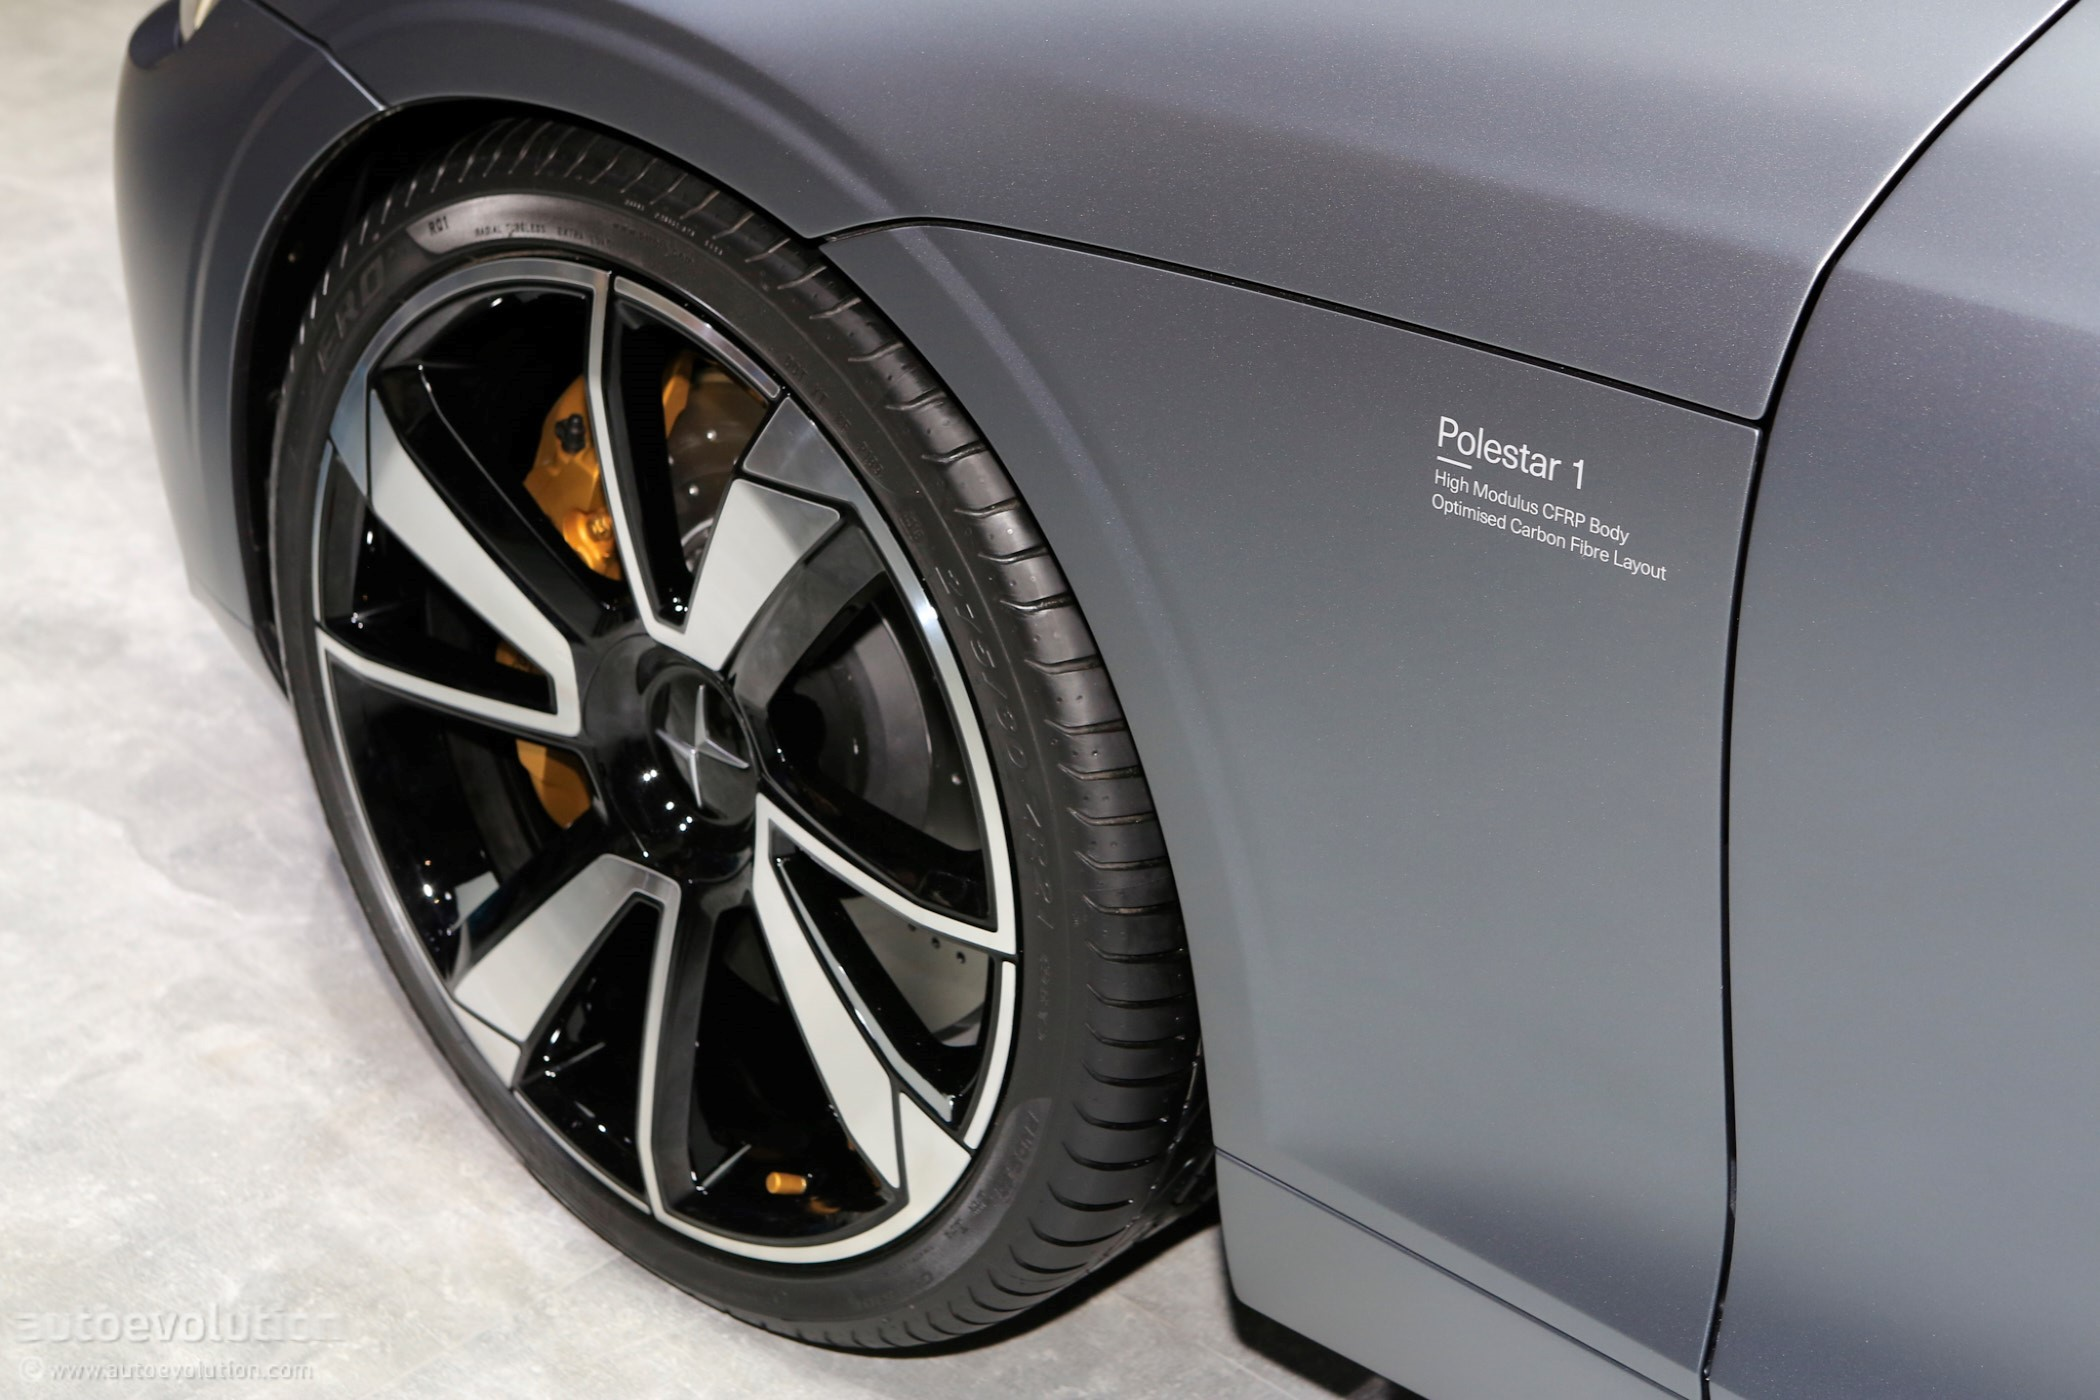 Orders now being taken for Polestar 1 performance hybrid